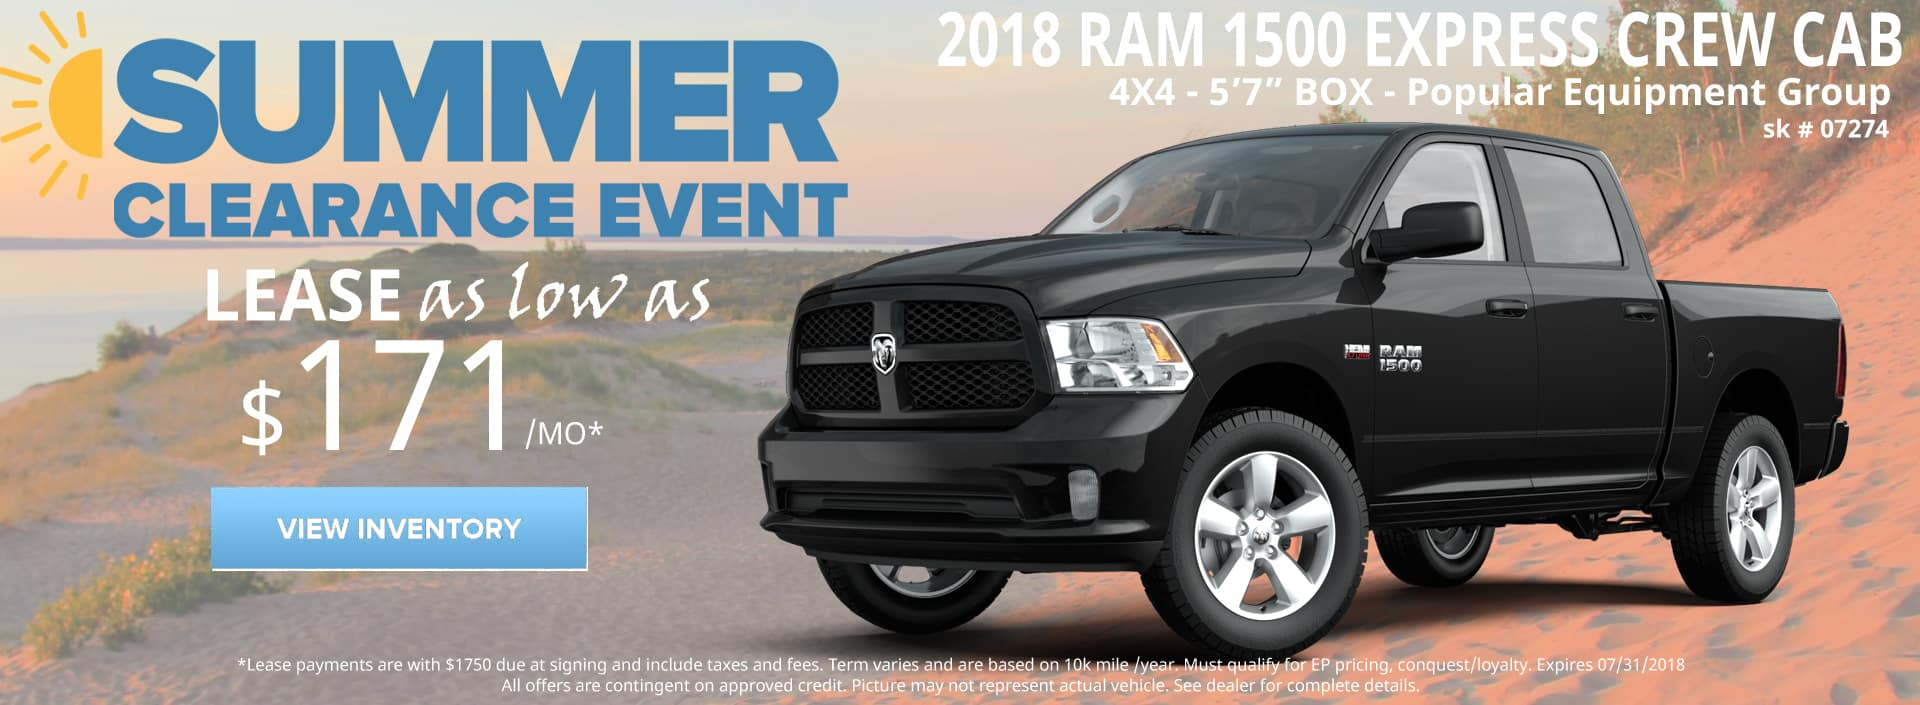 July 2018 Special Ram 1500 Crew Cab Express